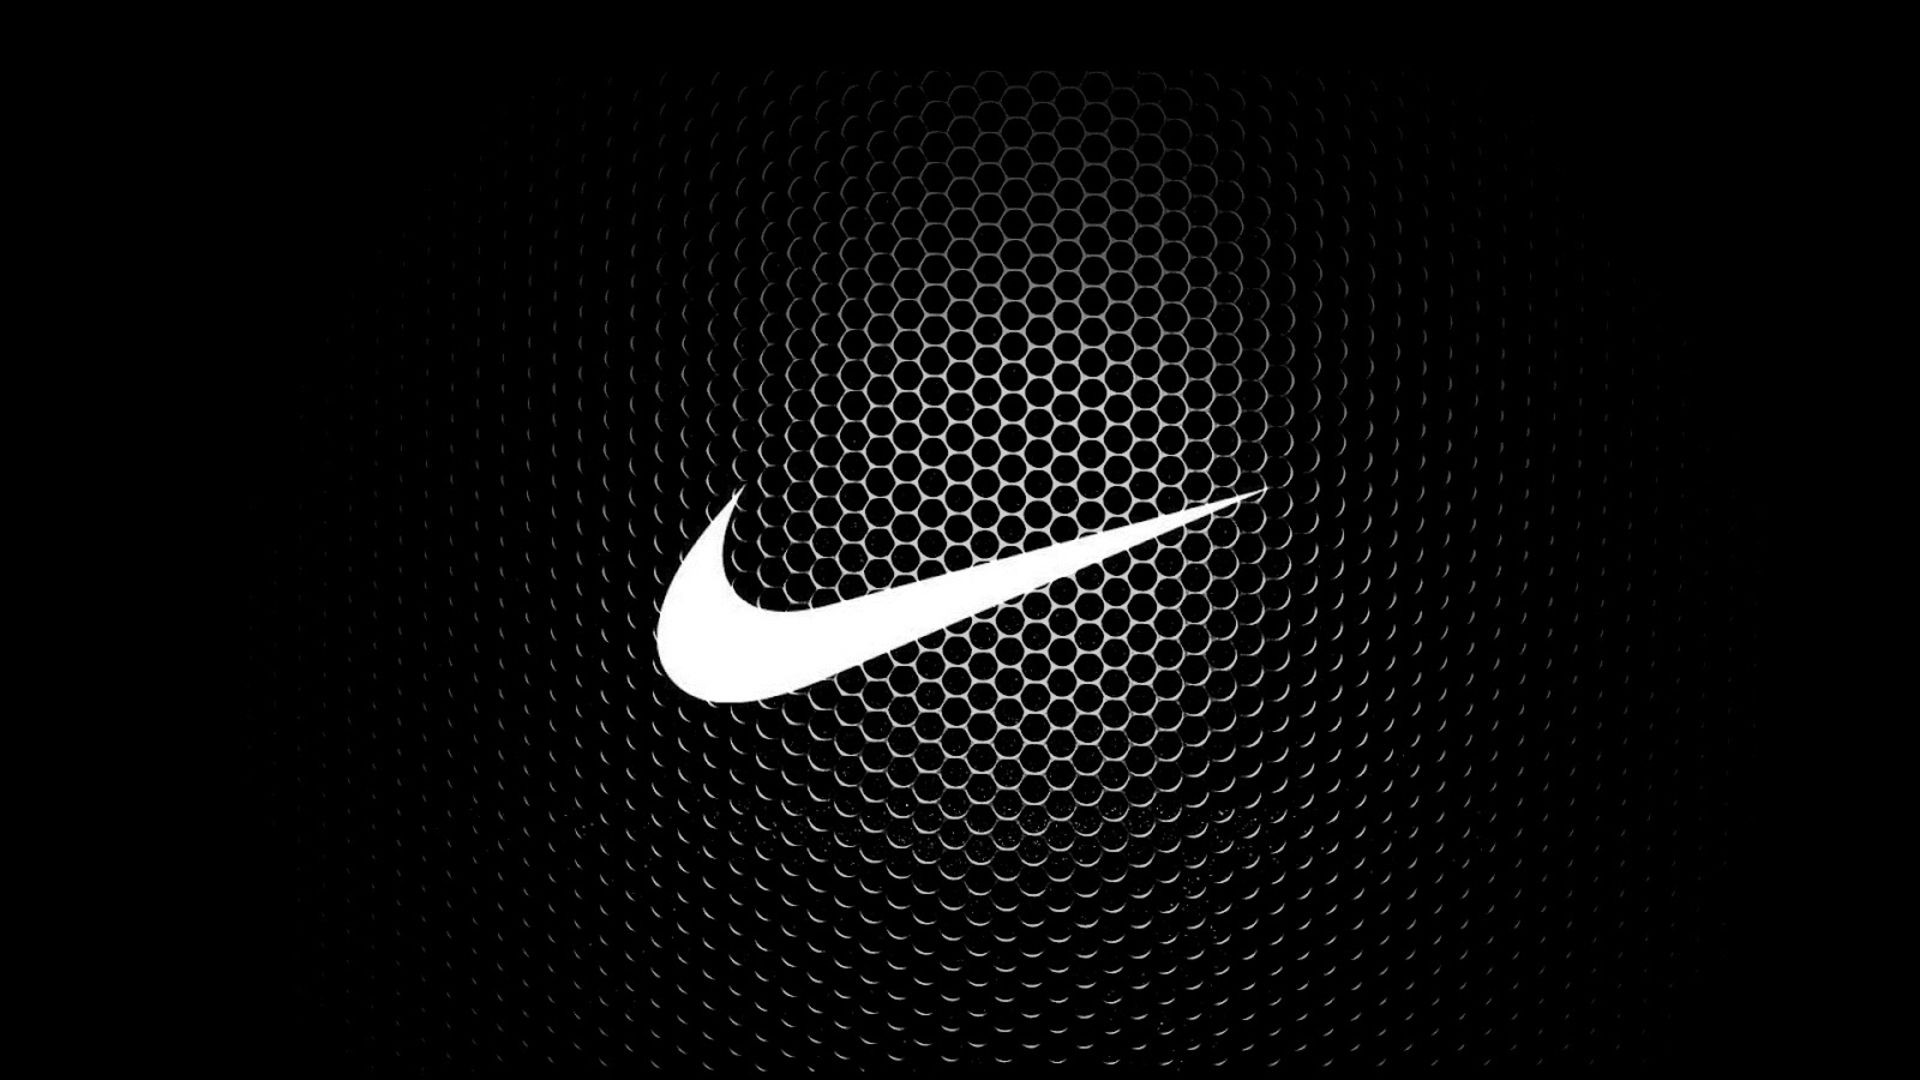 1378724 Nike Wallpaper HD Free Wallpapers Backgrounds Images FHD